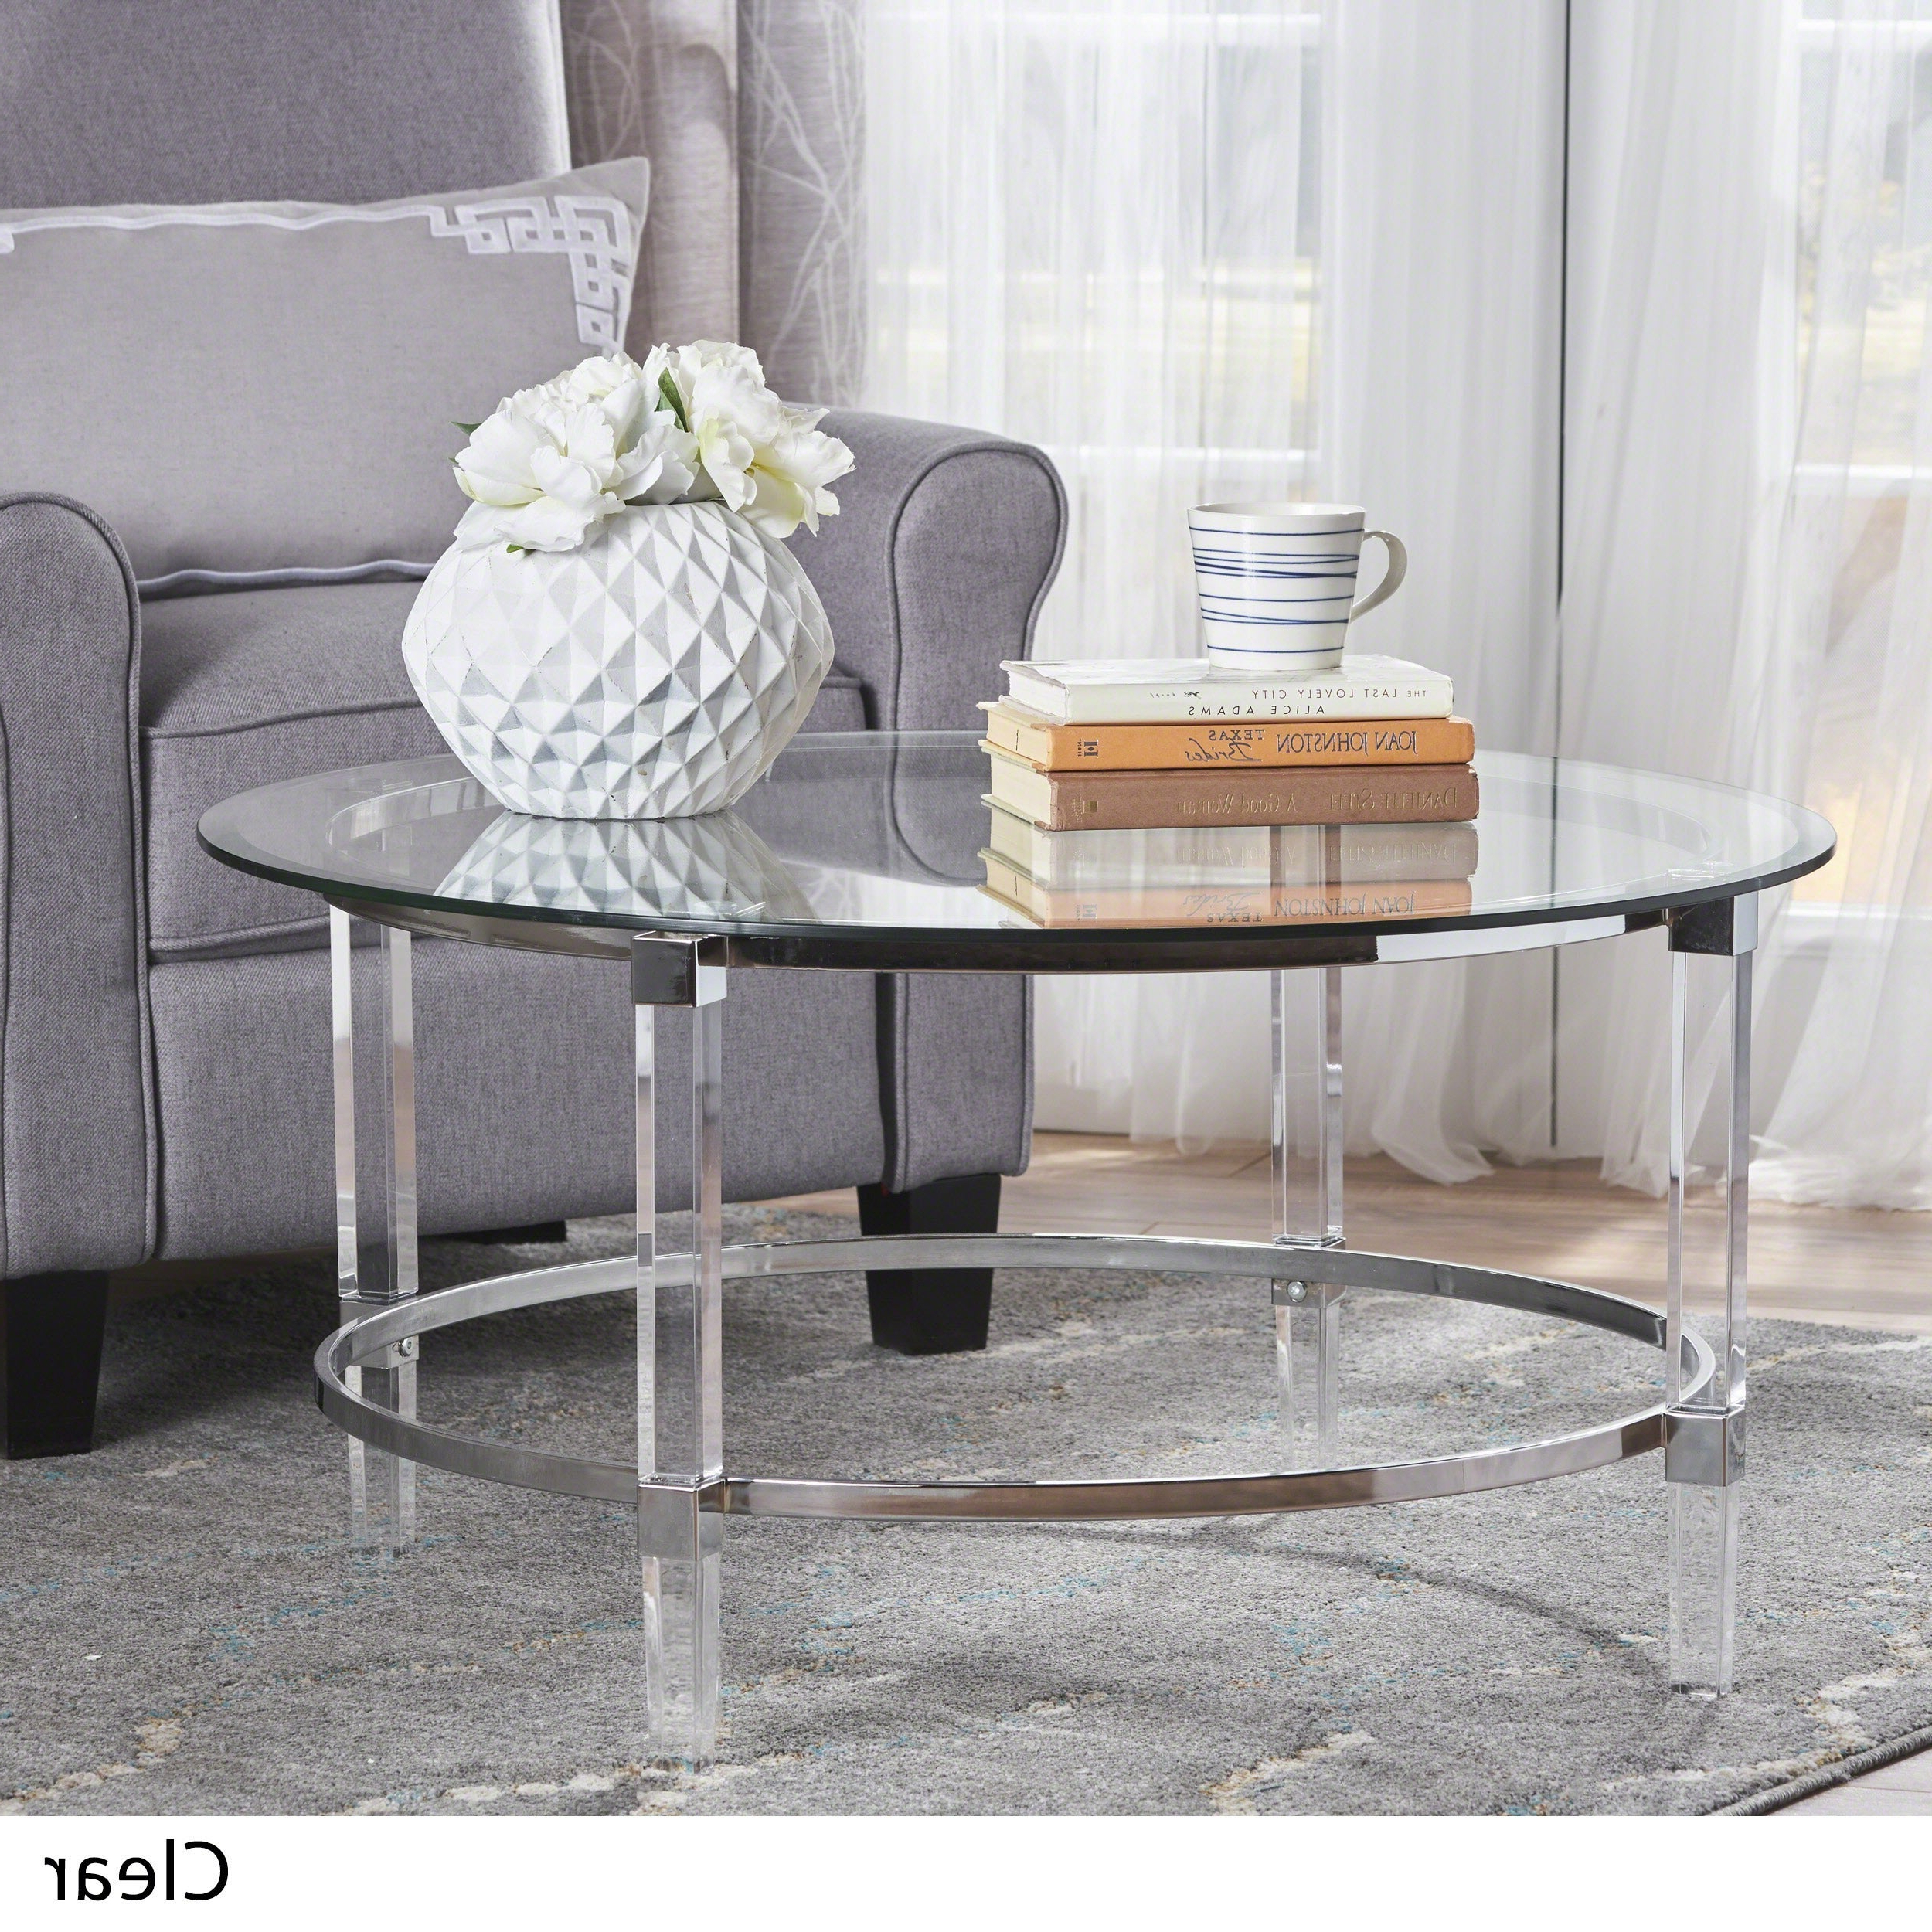 Elowen Round Glass Coffee Tablechristopher Knight Home Intended For Widely Used Elowen Round Glass Coffee Tables (Gallery 1 of 20)